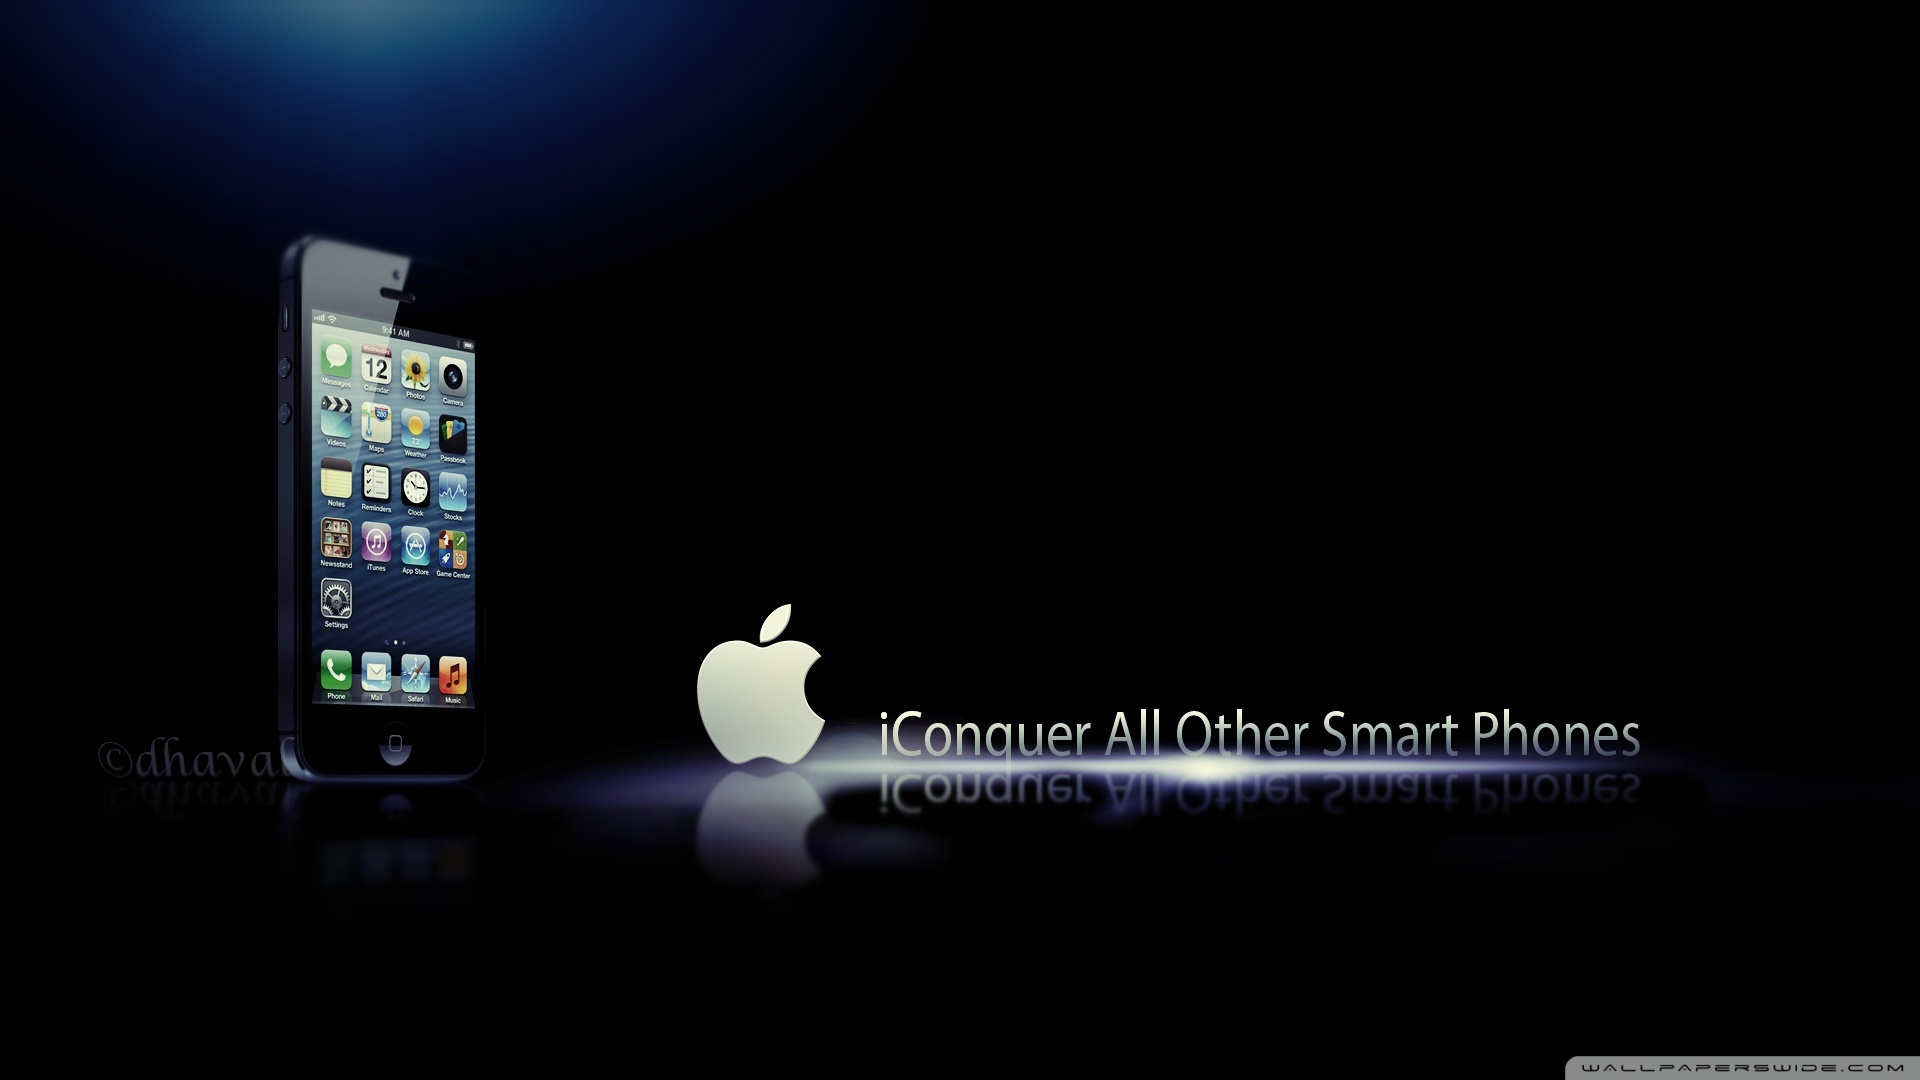 Wallpaper iphone gelap - Iphone 5s Black Wallpapers And Images Wallpapers Pictures Photos